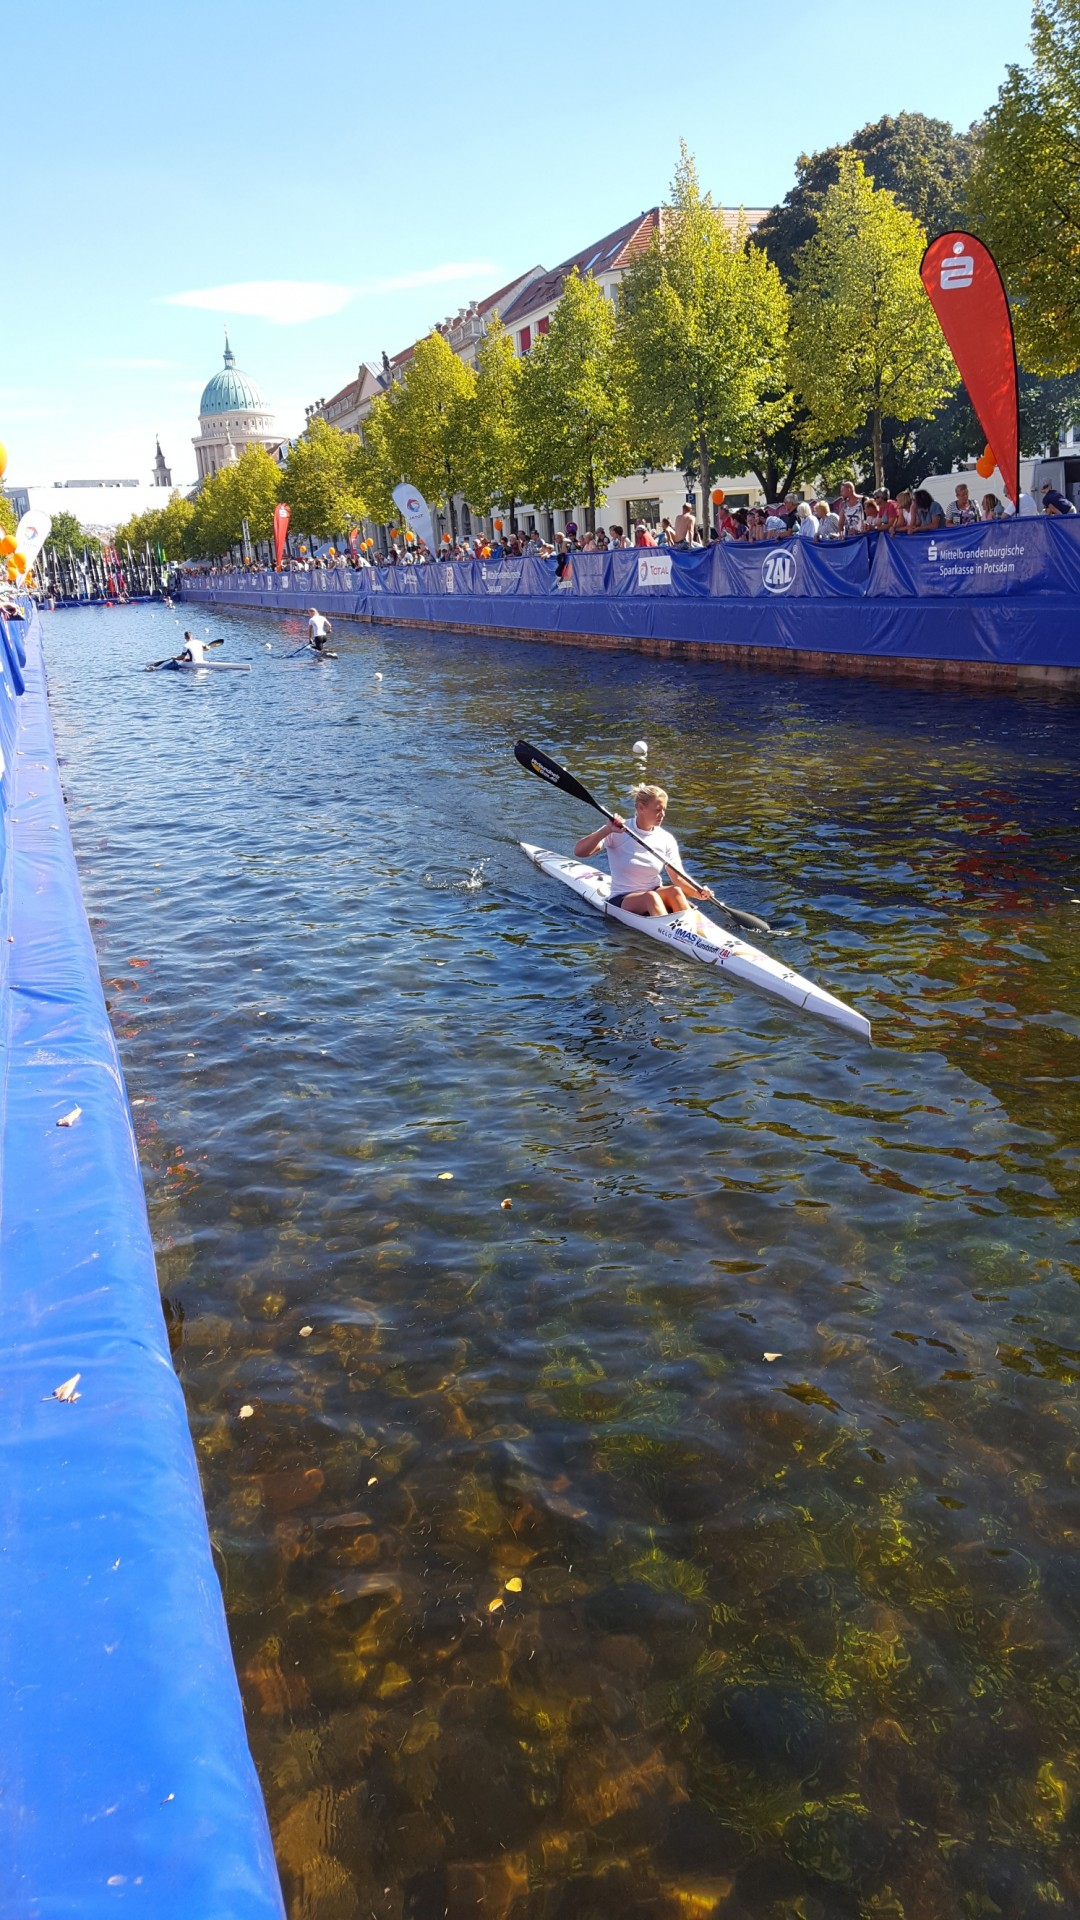 Kanalsprint in Potsdam